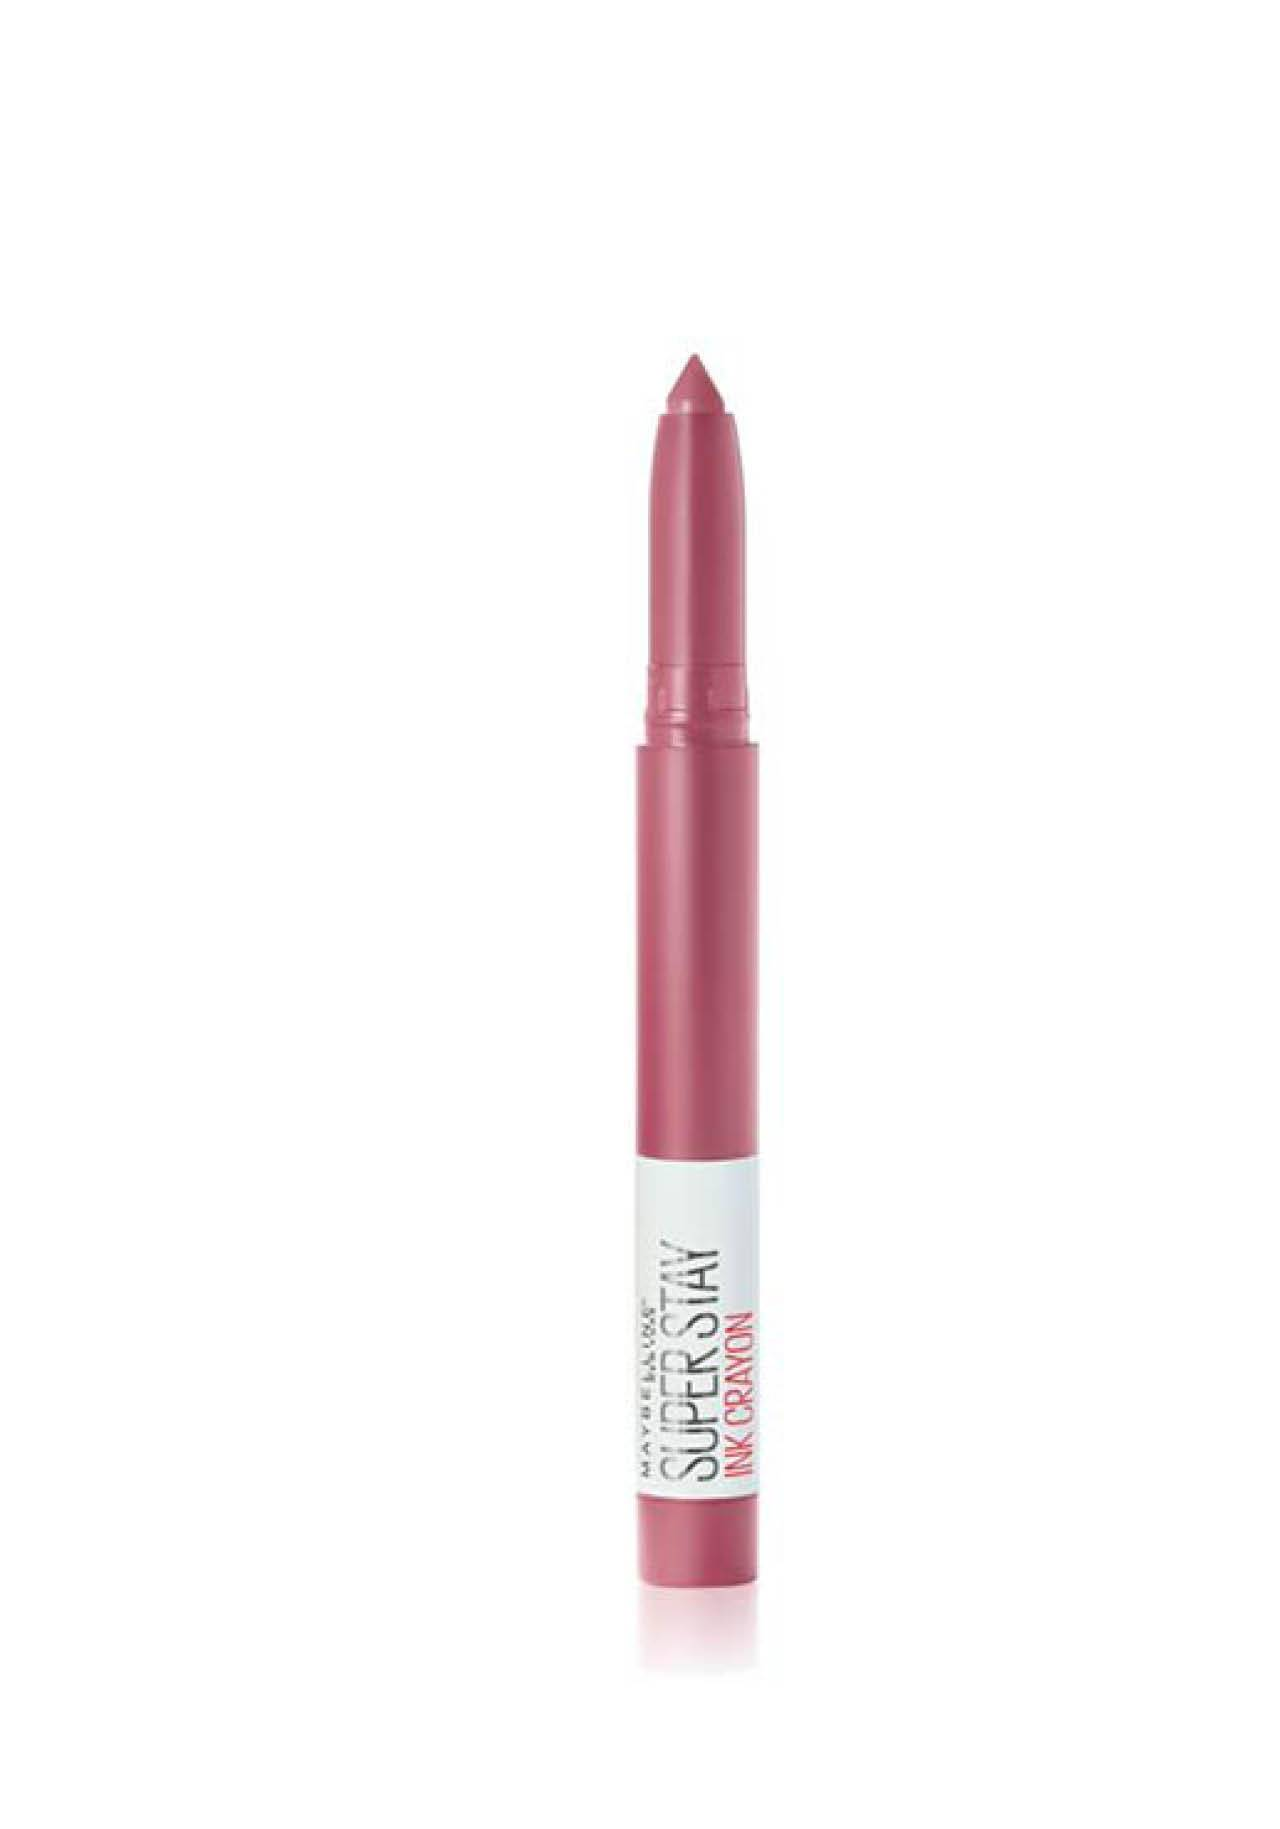 Productos favoritos redacción Labial formato crayon Super Stay Ink de Maybeline NY